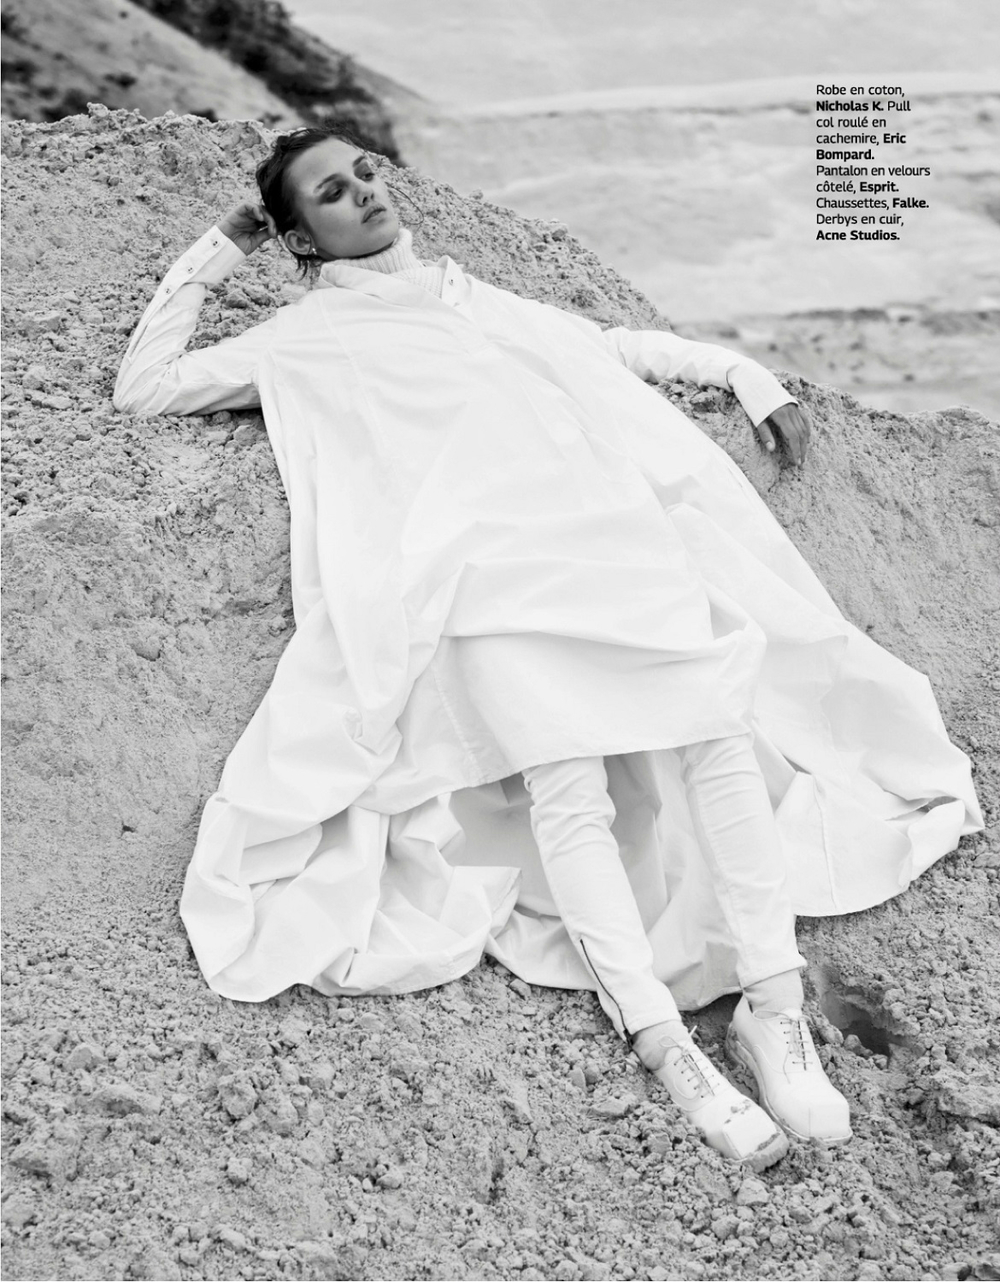 Taghi-Naderzad-Alice-le-Paige-Grazia-19-December-2014-8.jpeg